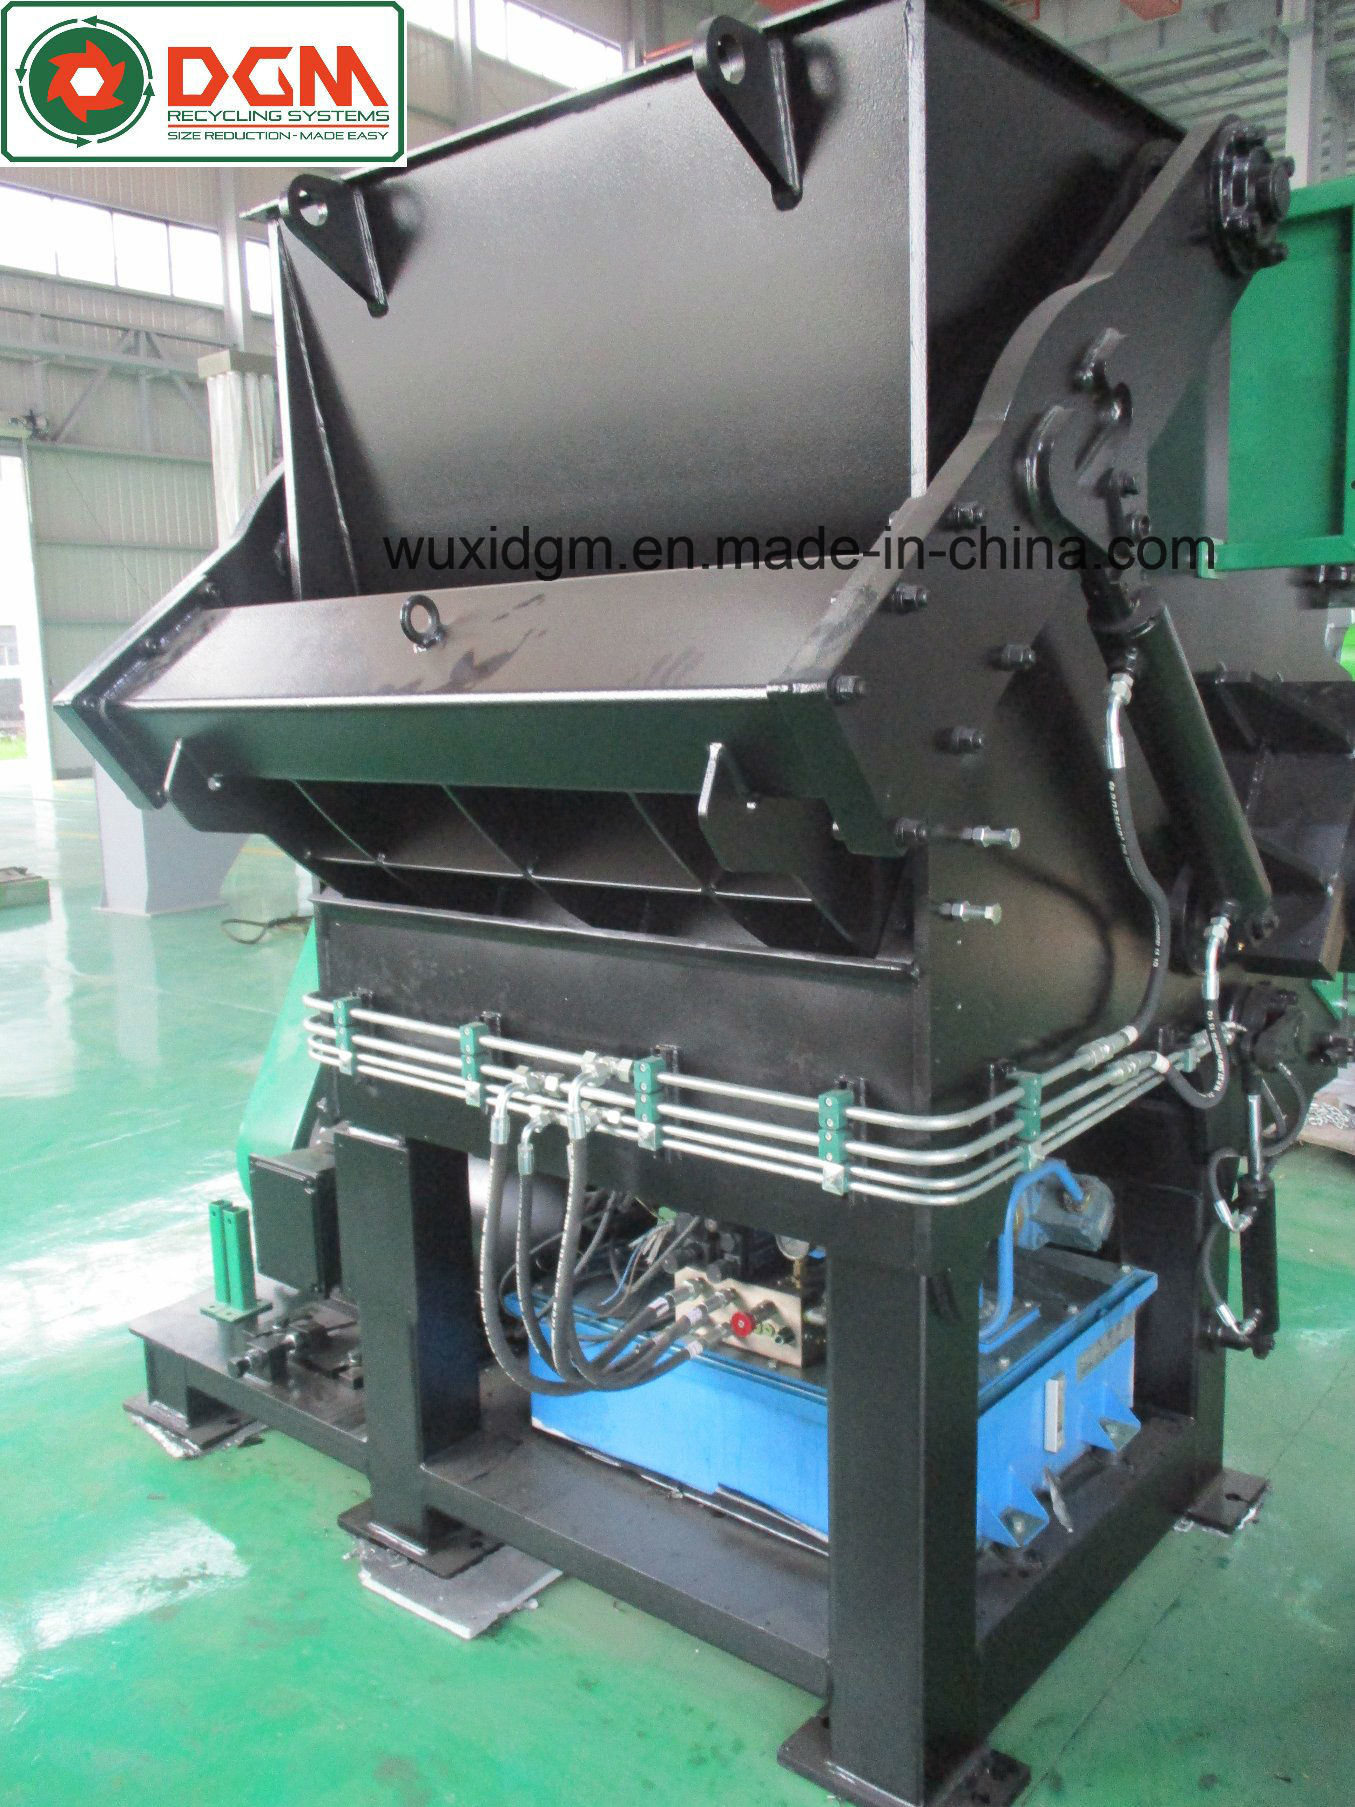 Dgs1200 Universal Single Shaft Shredder